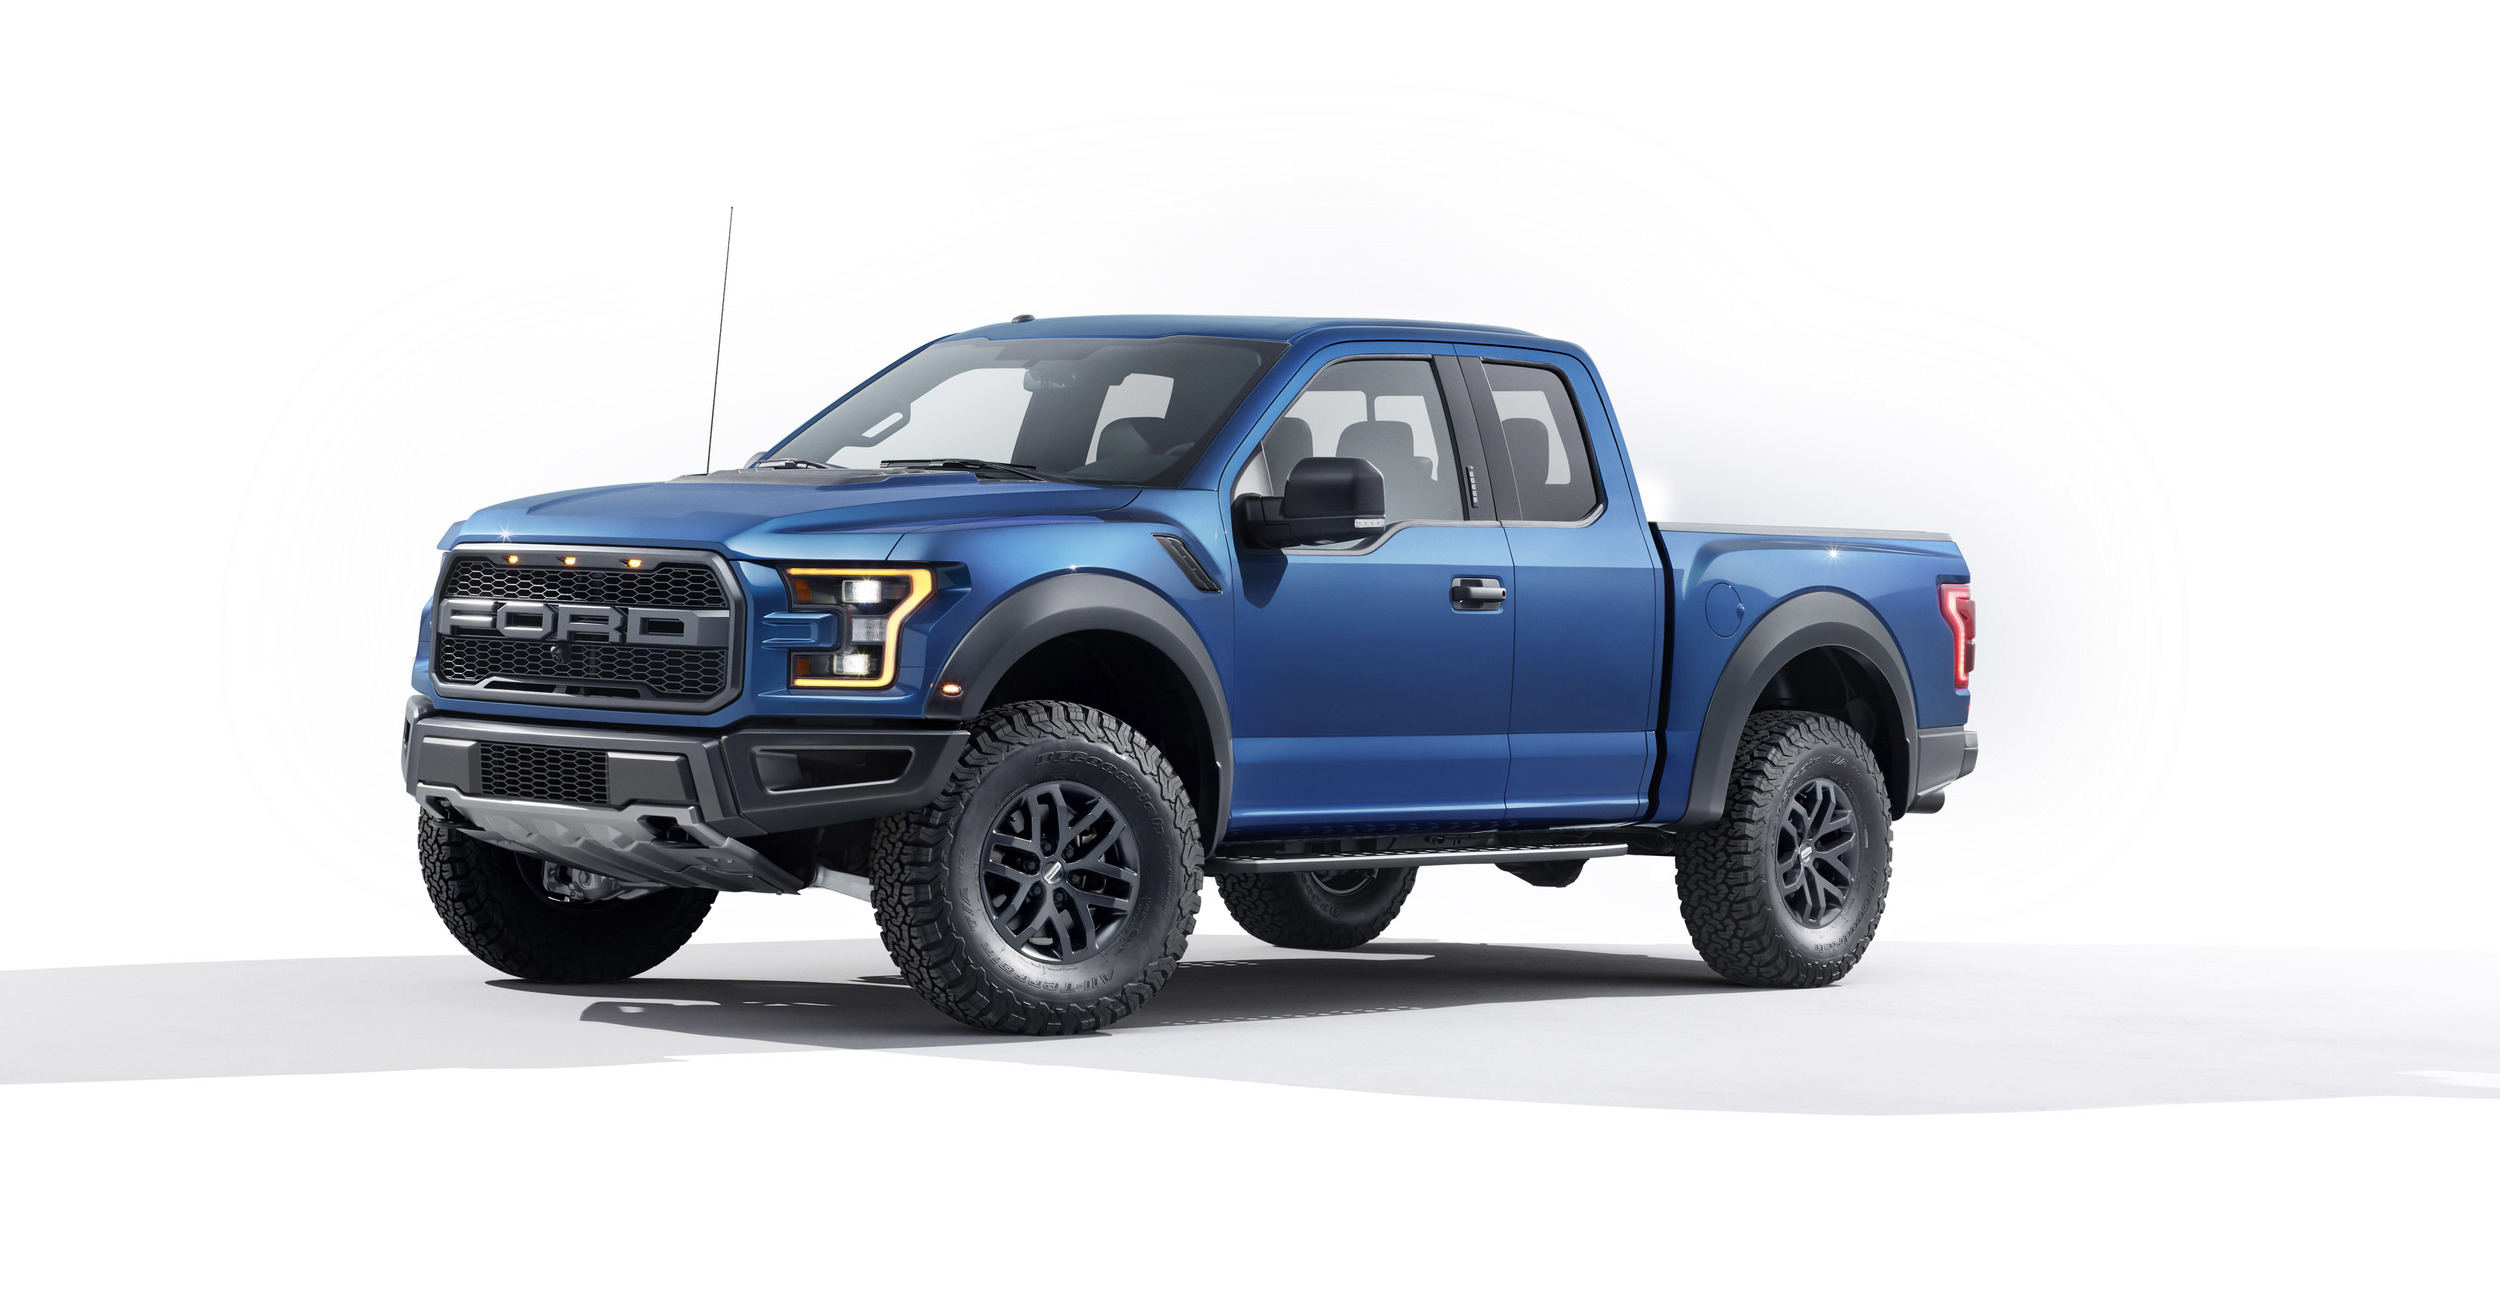 Thread: NAIAS 2015: 2017 Ford F-150 Raptor